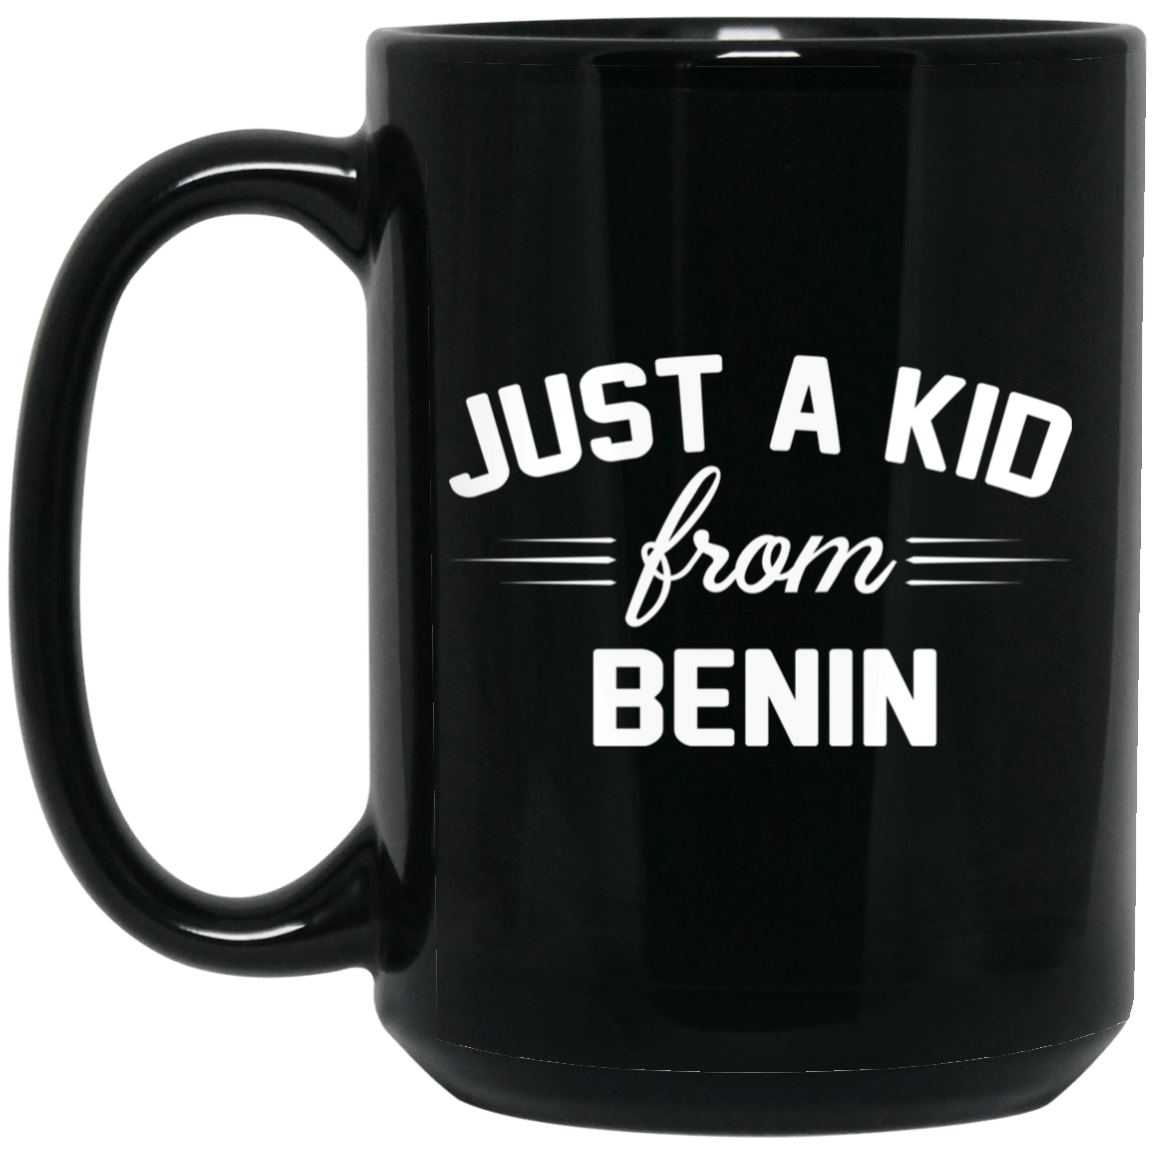 Just A Kid Store | Benin Mug 1066-10182-72111300-49311 - Tee Ript